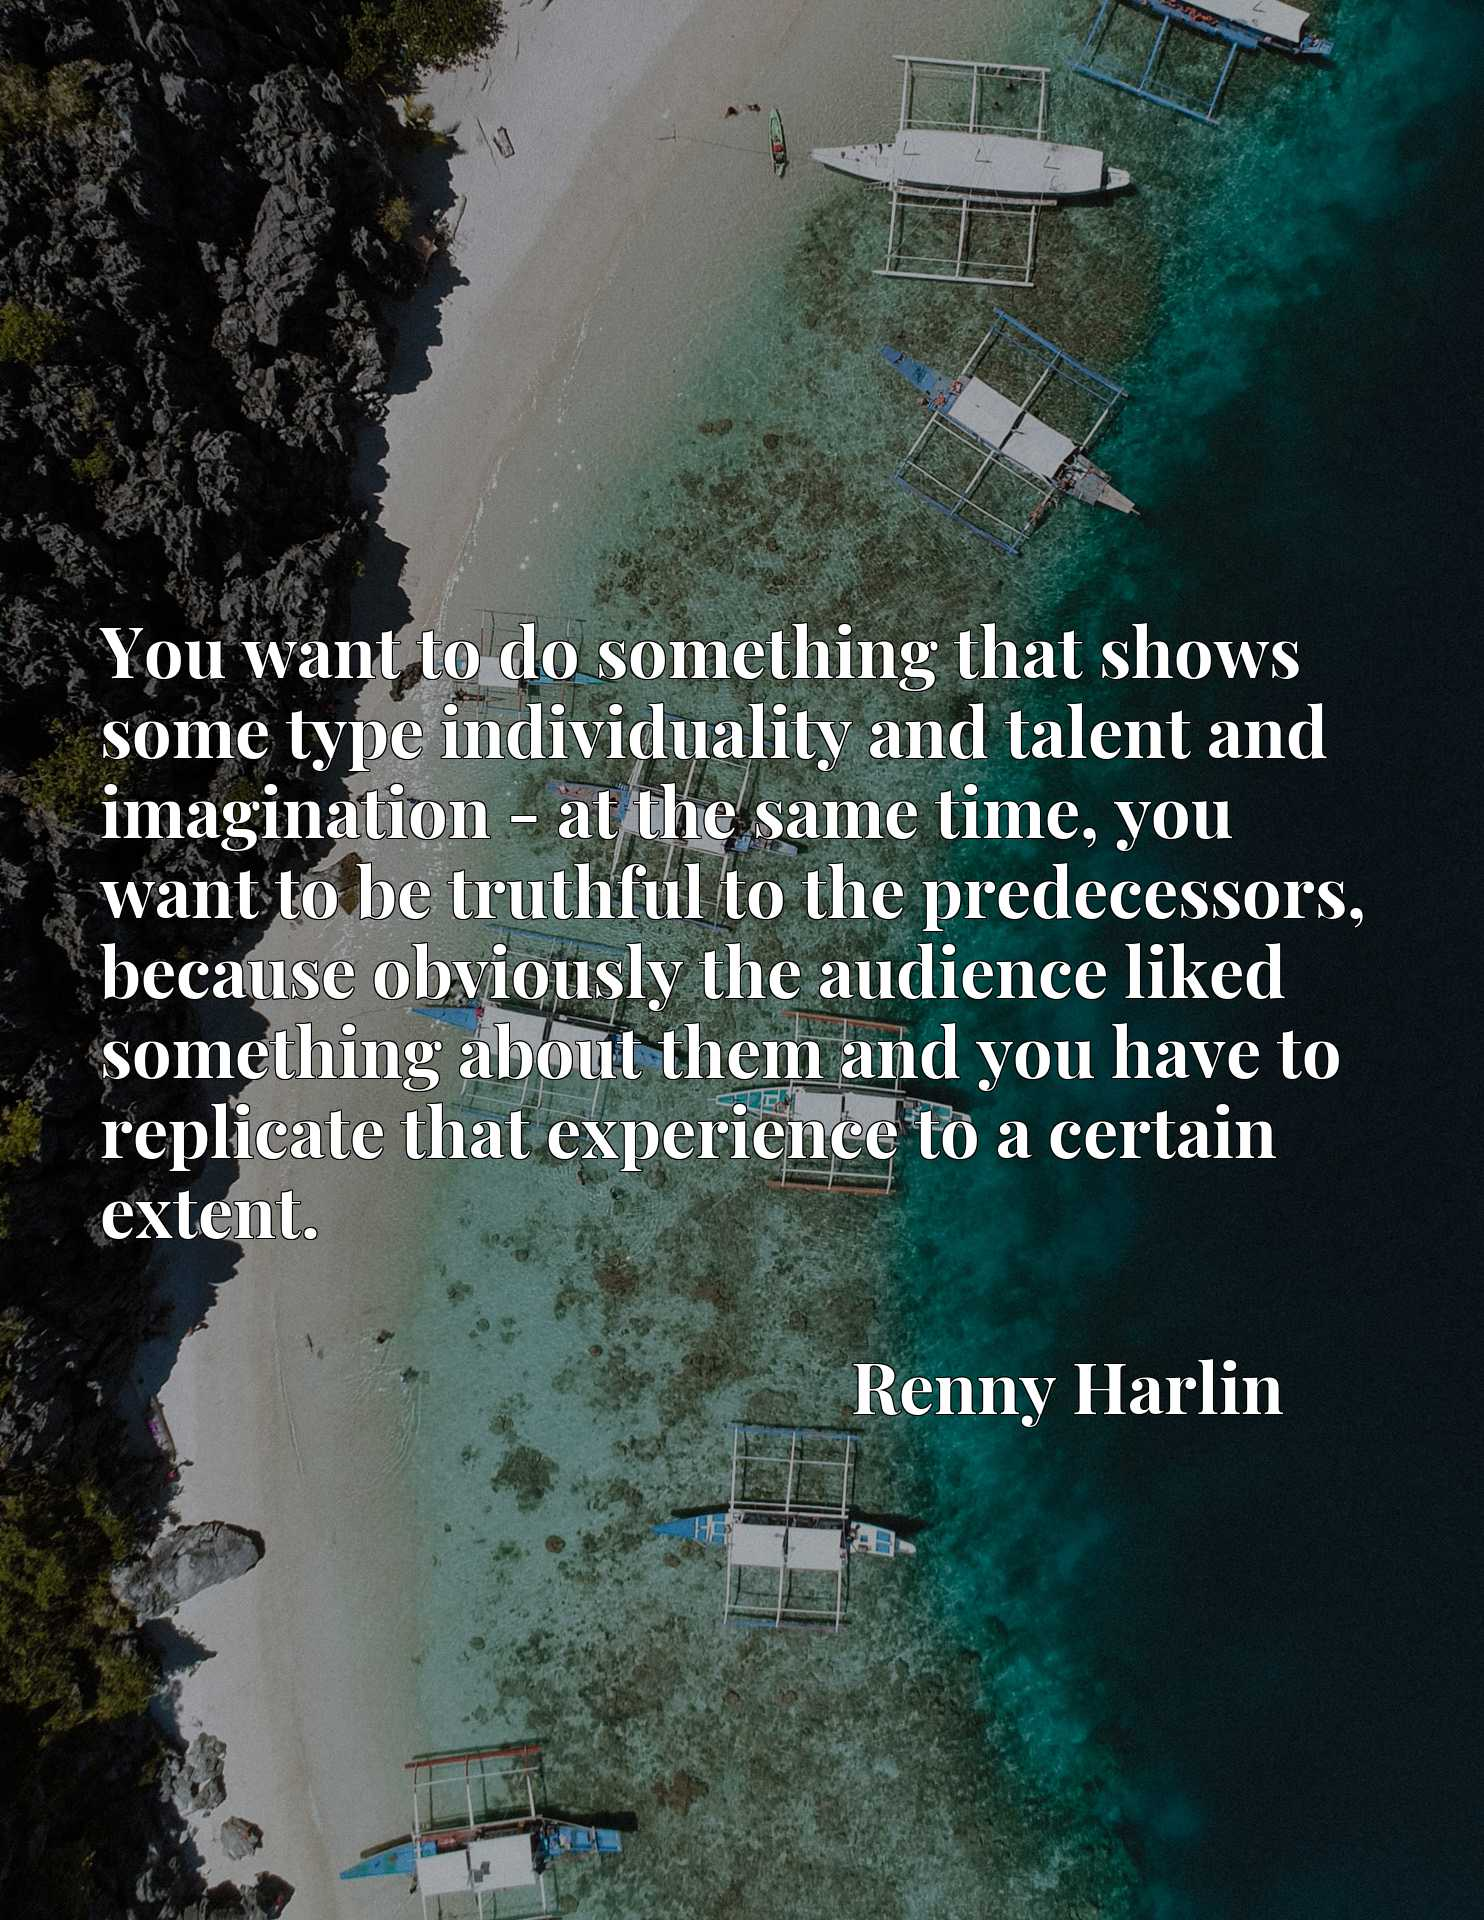 You want to do something that shows some type individuality and talent and imagination - at the same time, you want to be truthful to the predecessors, because obviously the audience liked something about them and you have to replicate that experience to a certain extent.